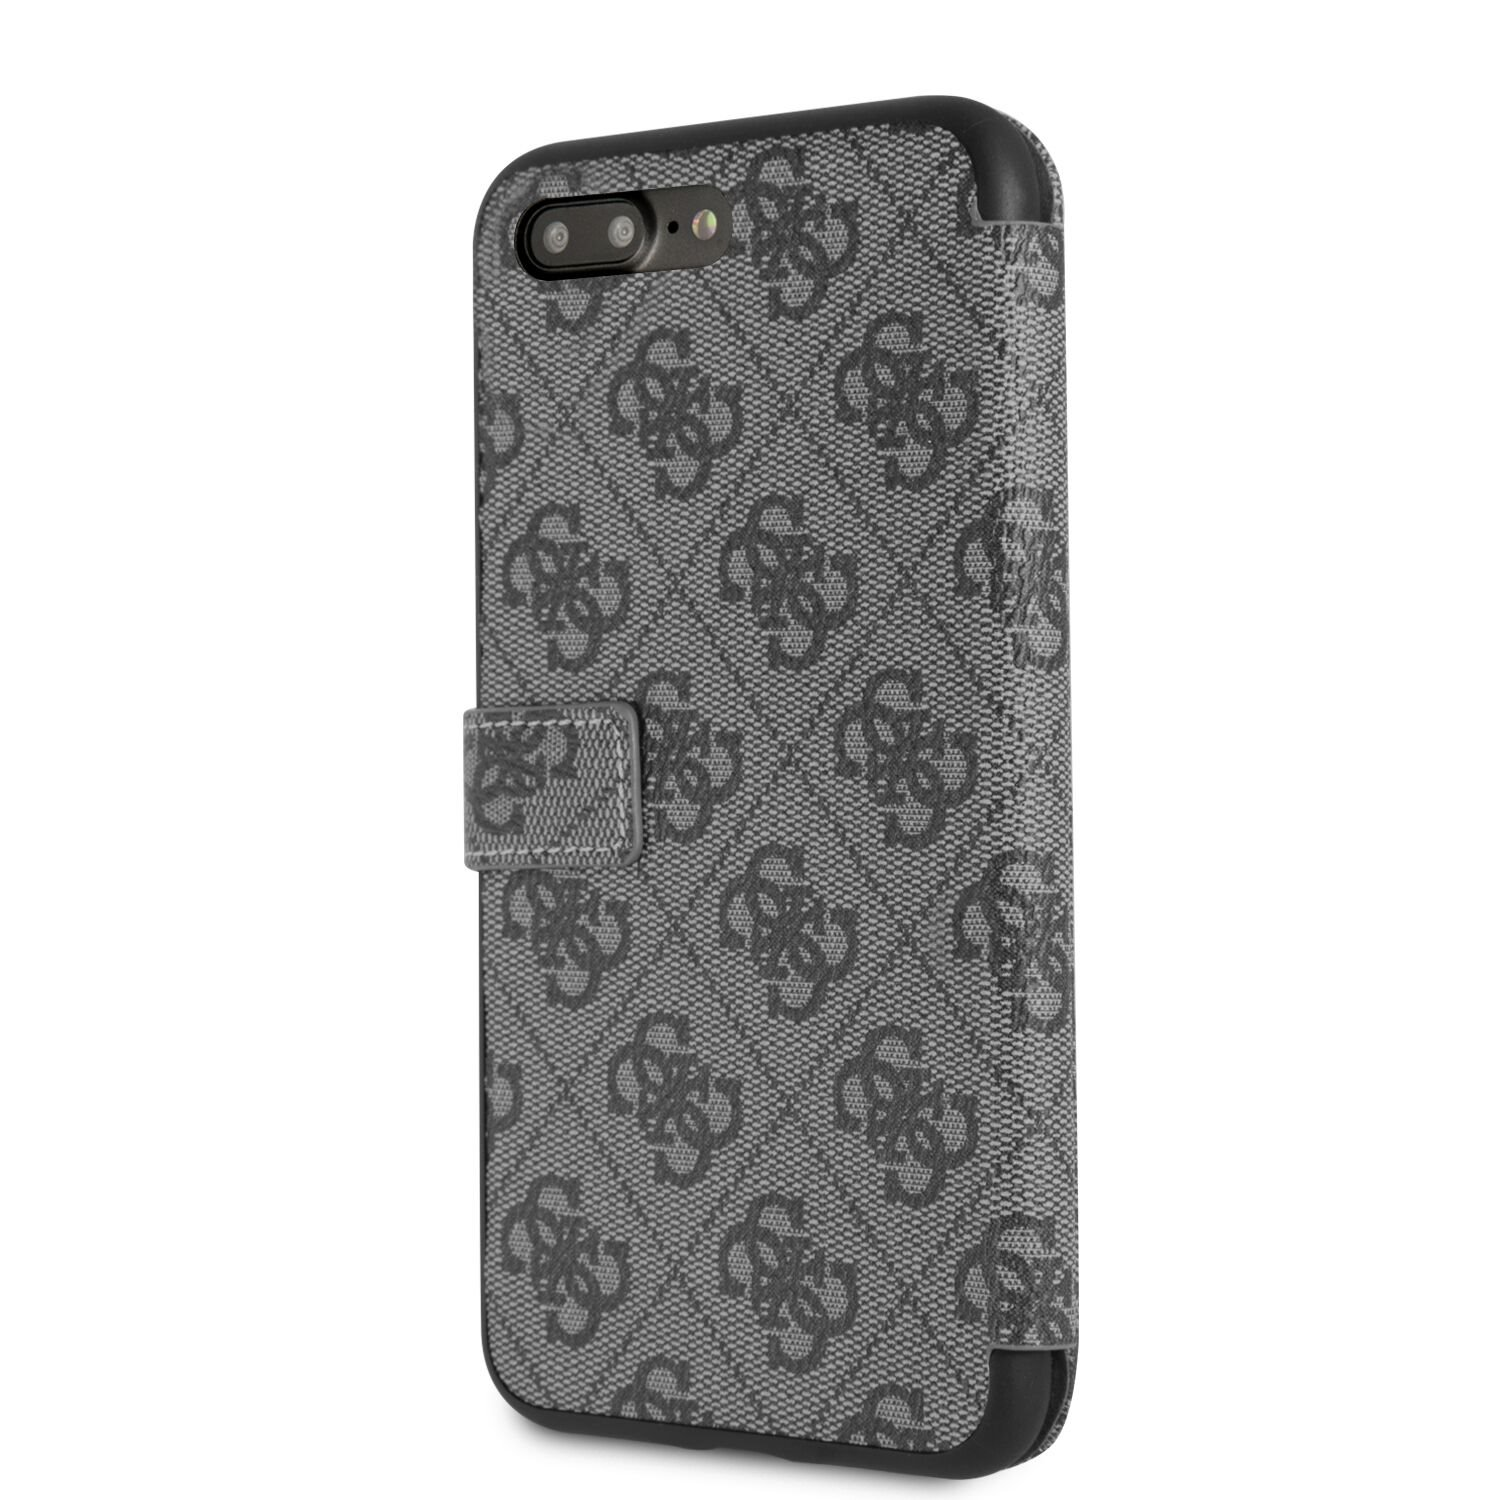 GUFLBKI8L4GG Guess Charms Book Case 4G Grey pro iPhone 7/8 Plus 3700740451557